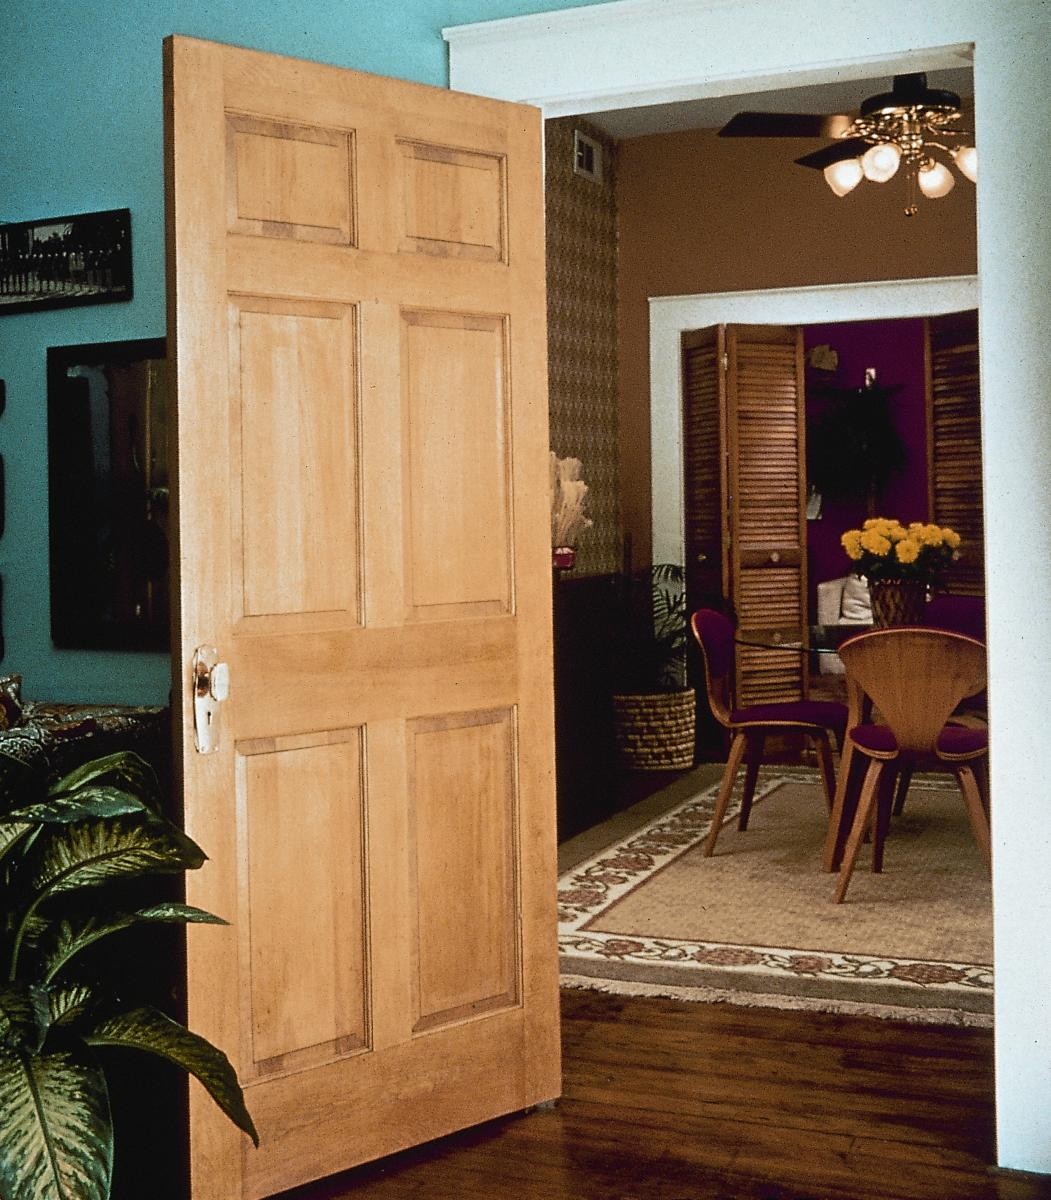 OOB\u003dout of business & Pine/Wood/Flush door manufacturers who have gone out of business ...